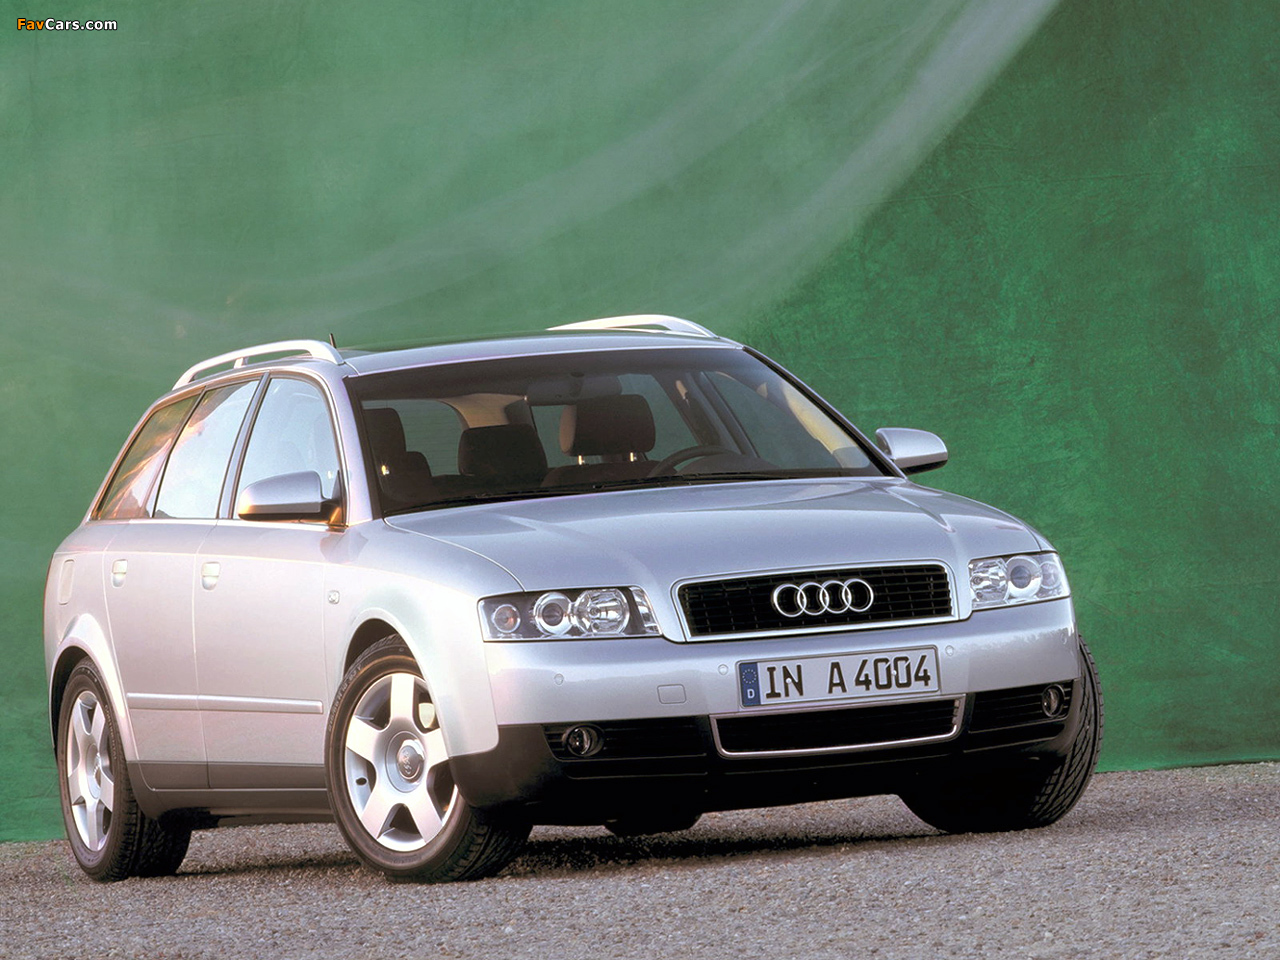 Images Of Audi A4 1 9 Tdi Avant B6 8e 2001 2004 1280x960